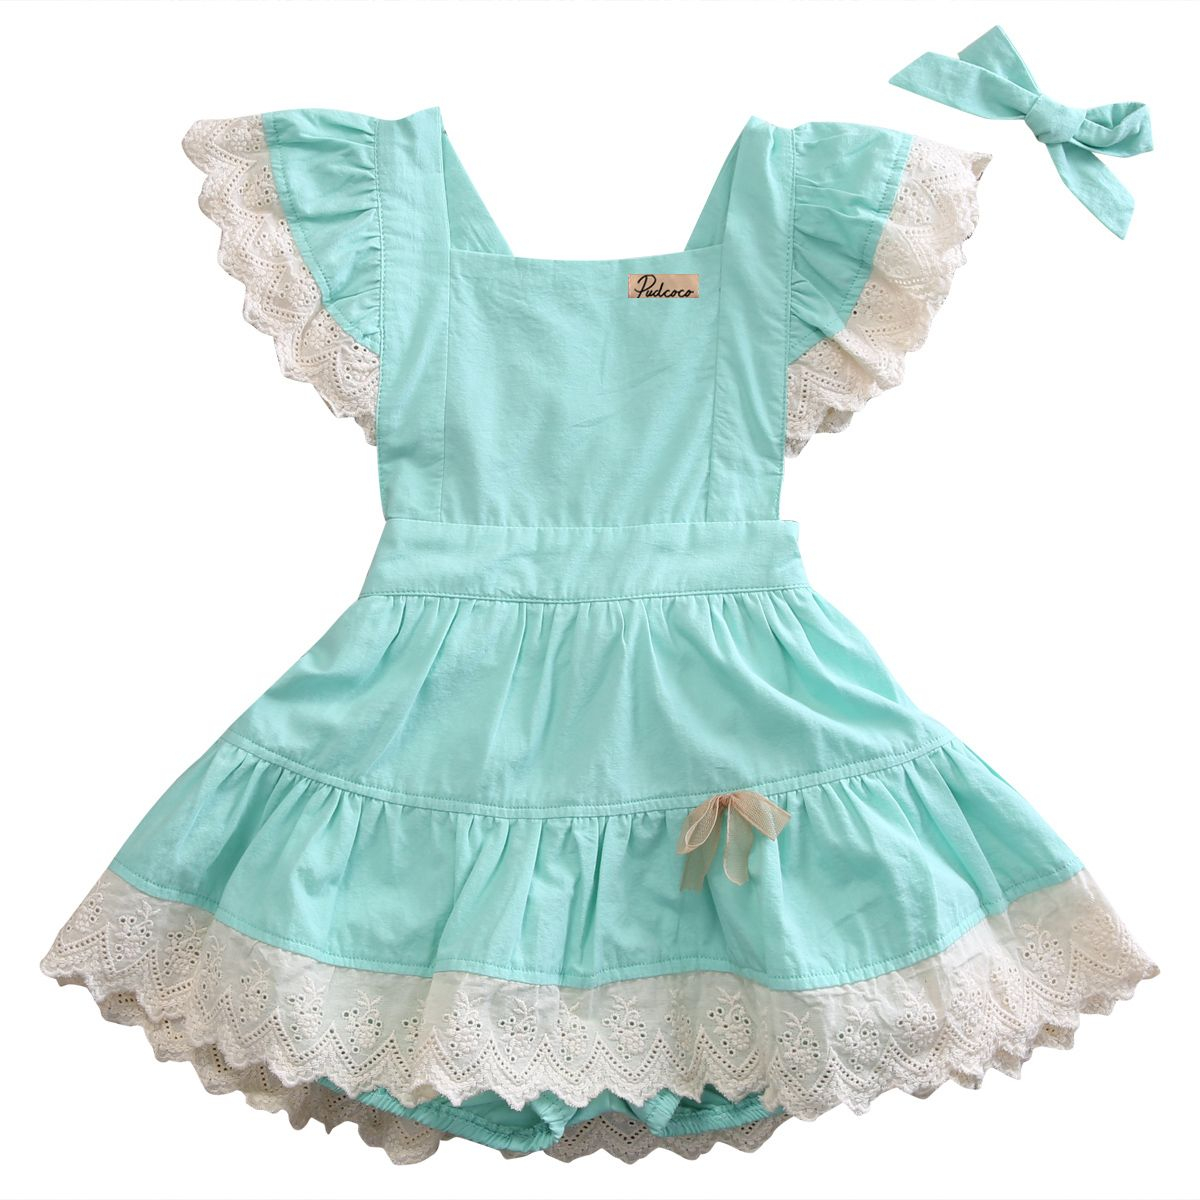 Green dress baby images  Click to Buy ucuc Y New PCS Toddler Kids Baby Girls Cotton Ruched